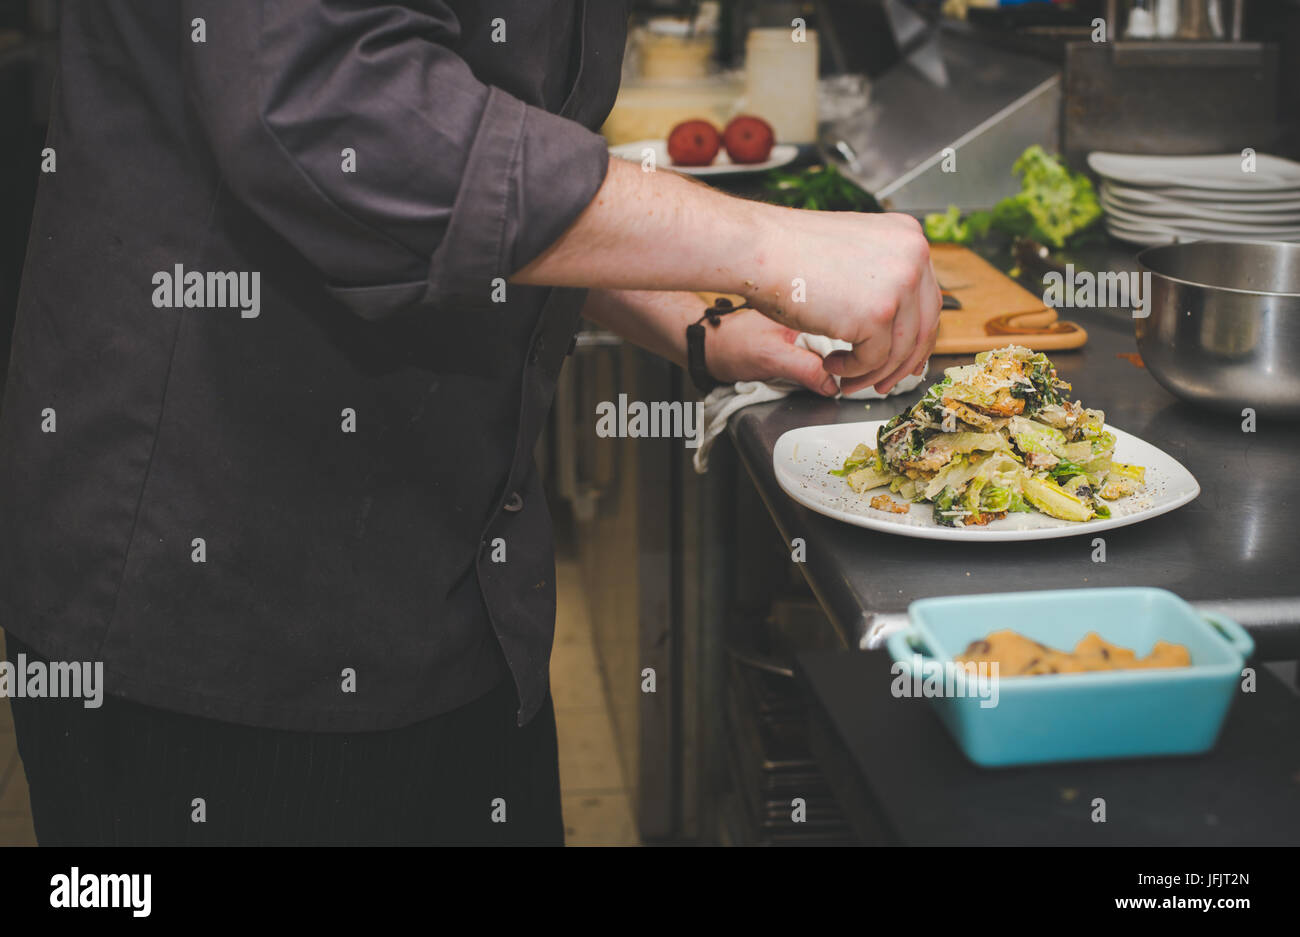 A chef prepares a  meal. - Stock Image